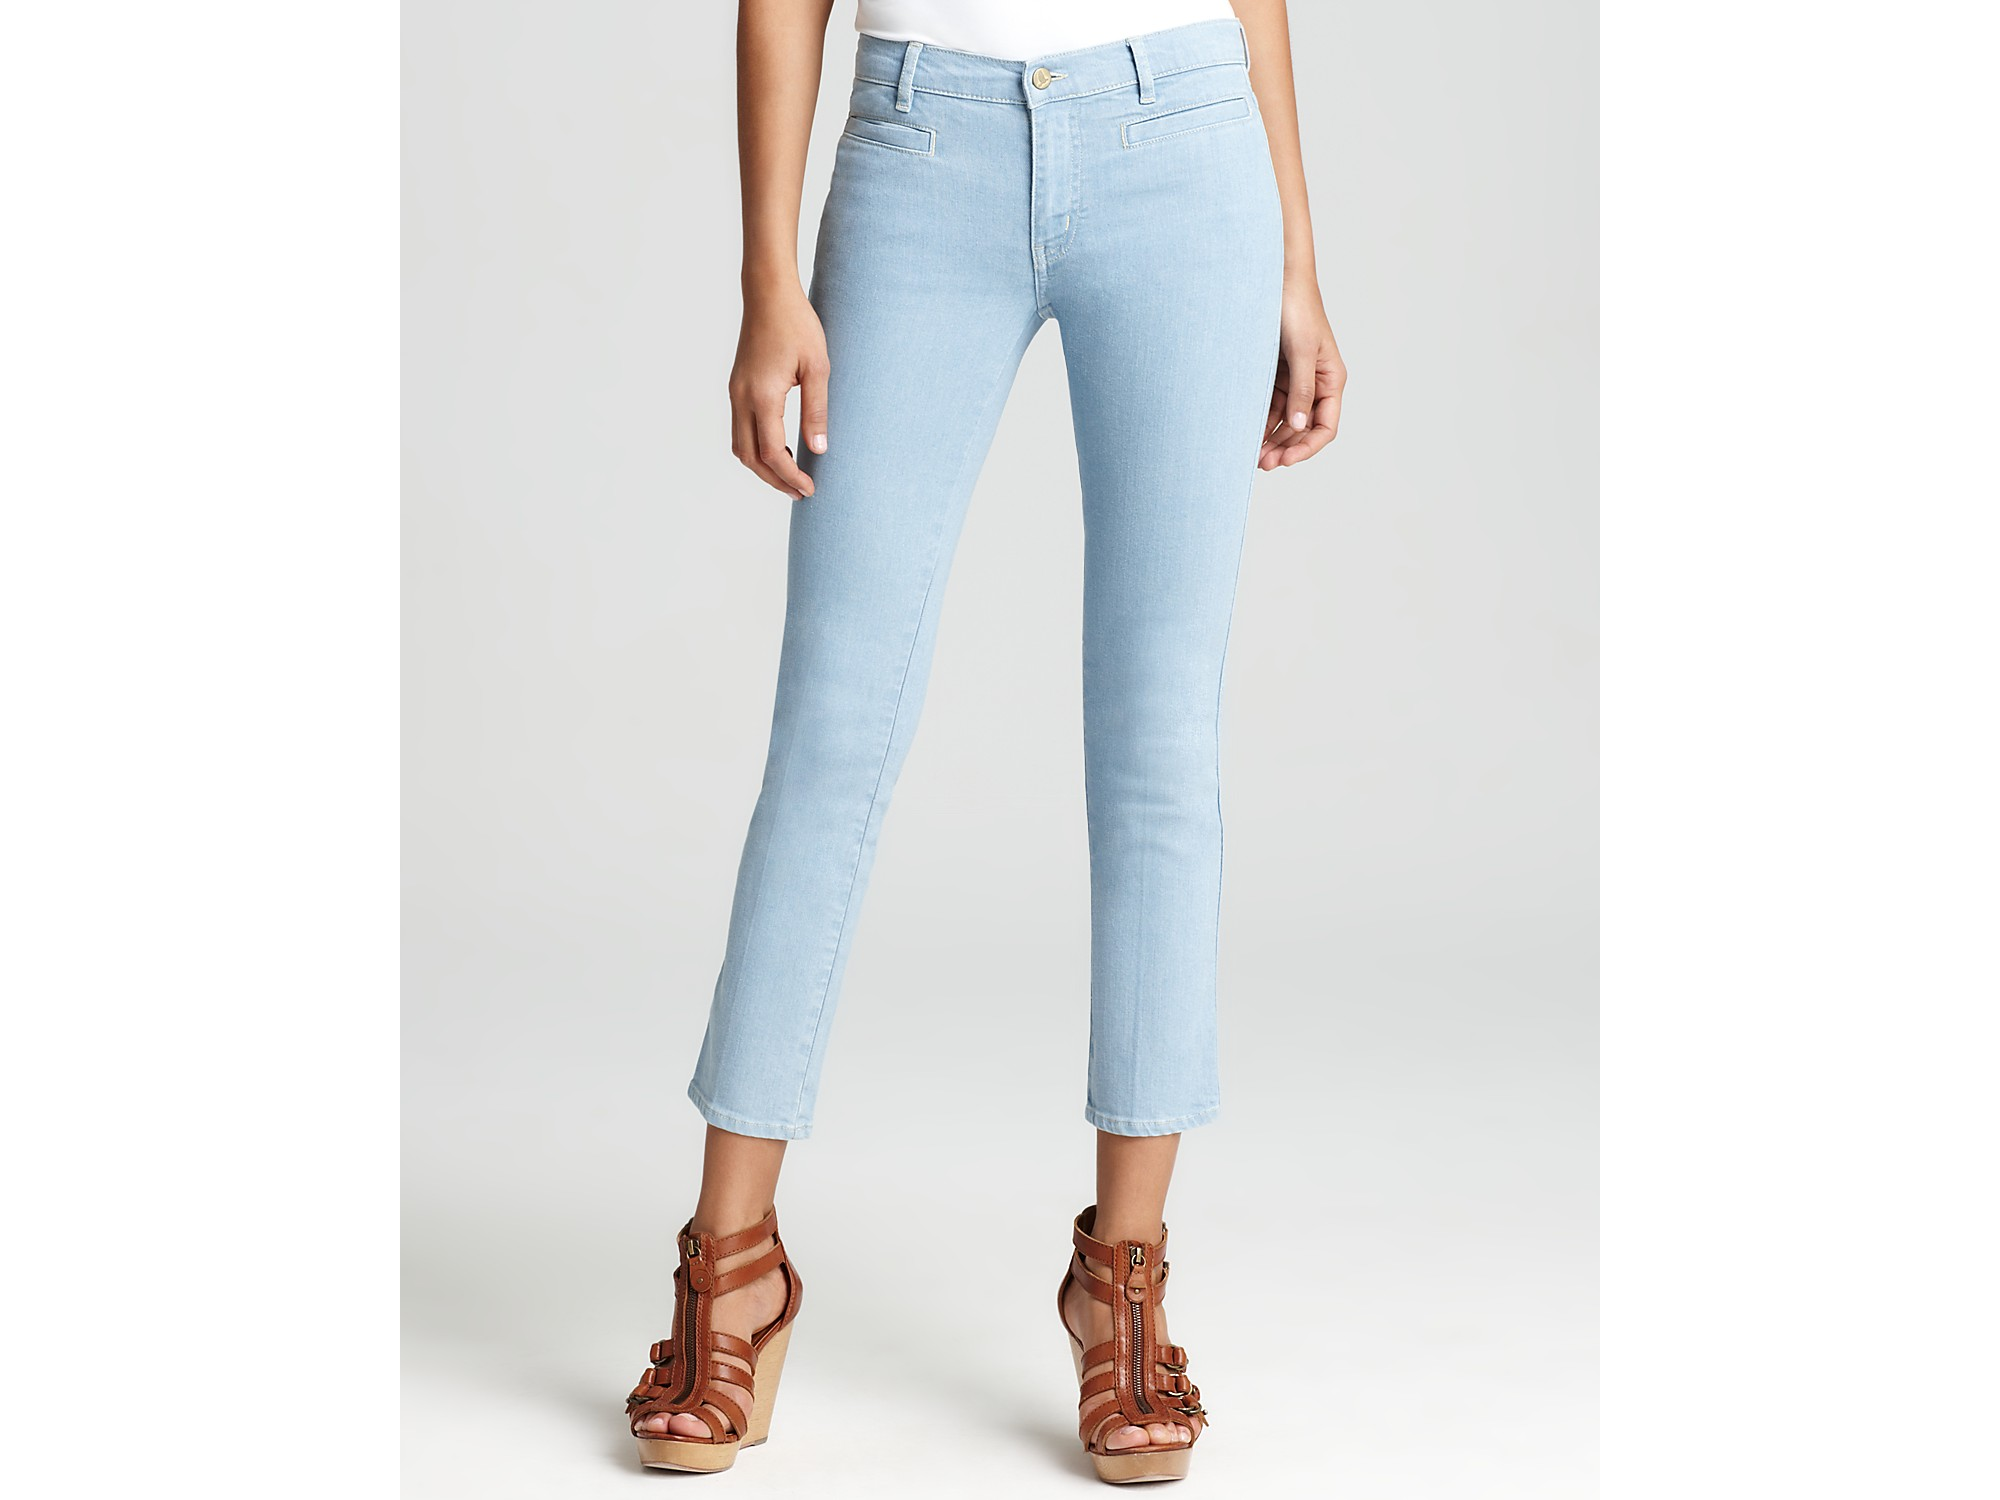 Paris Frayed Skinny Jeans Mih Jeans RdqsdCsc